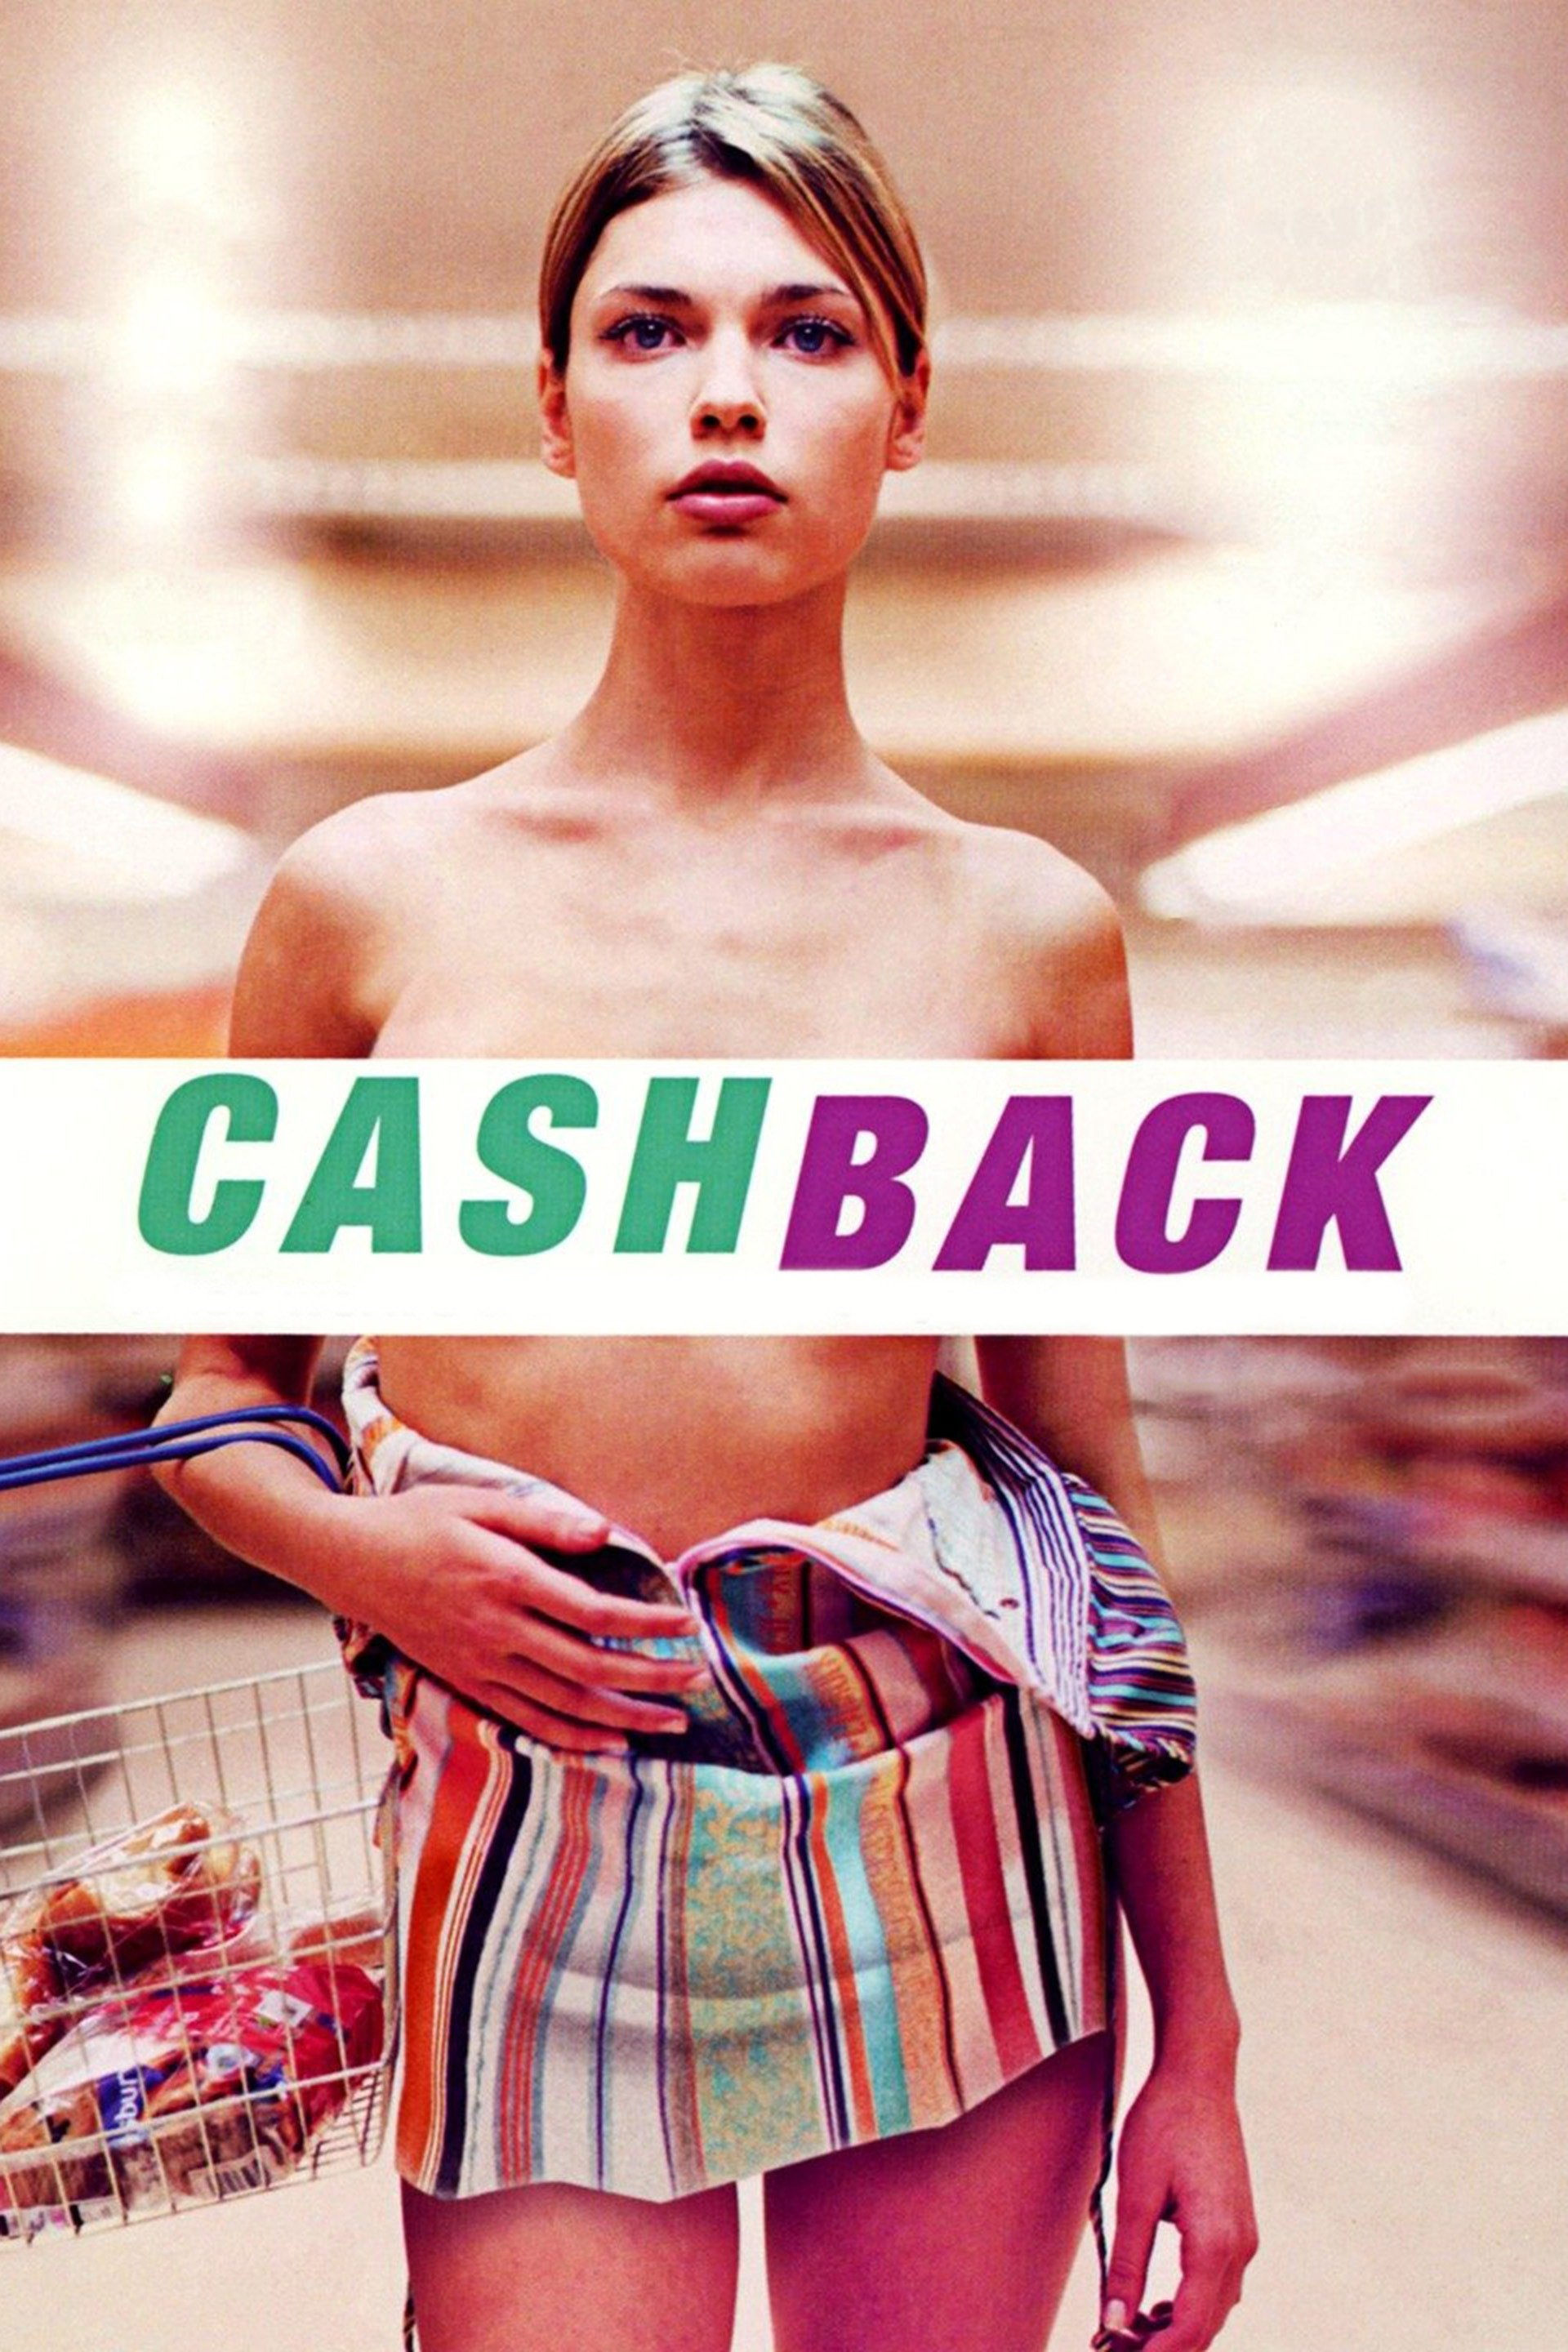 Cashback on FREECABLE TV